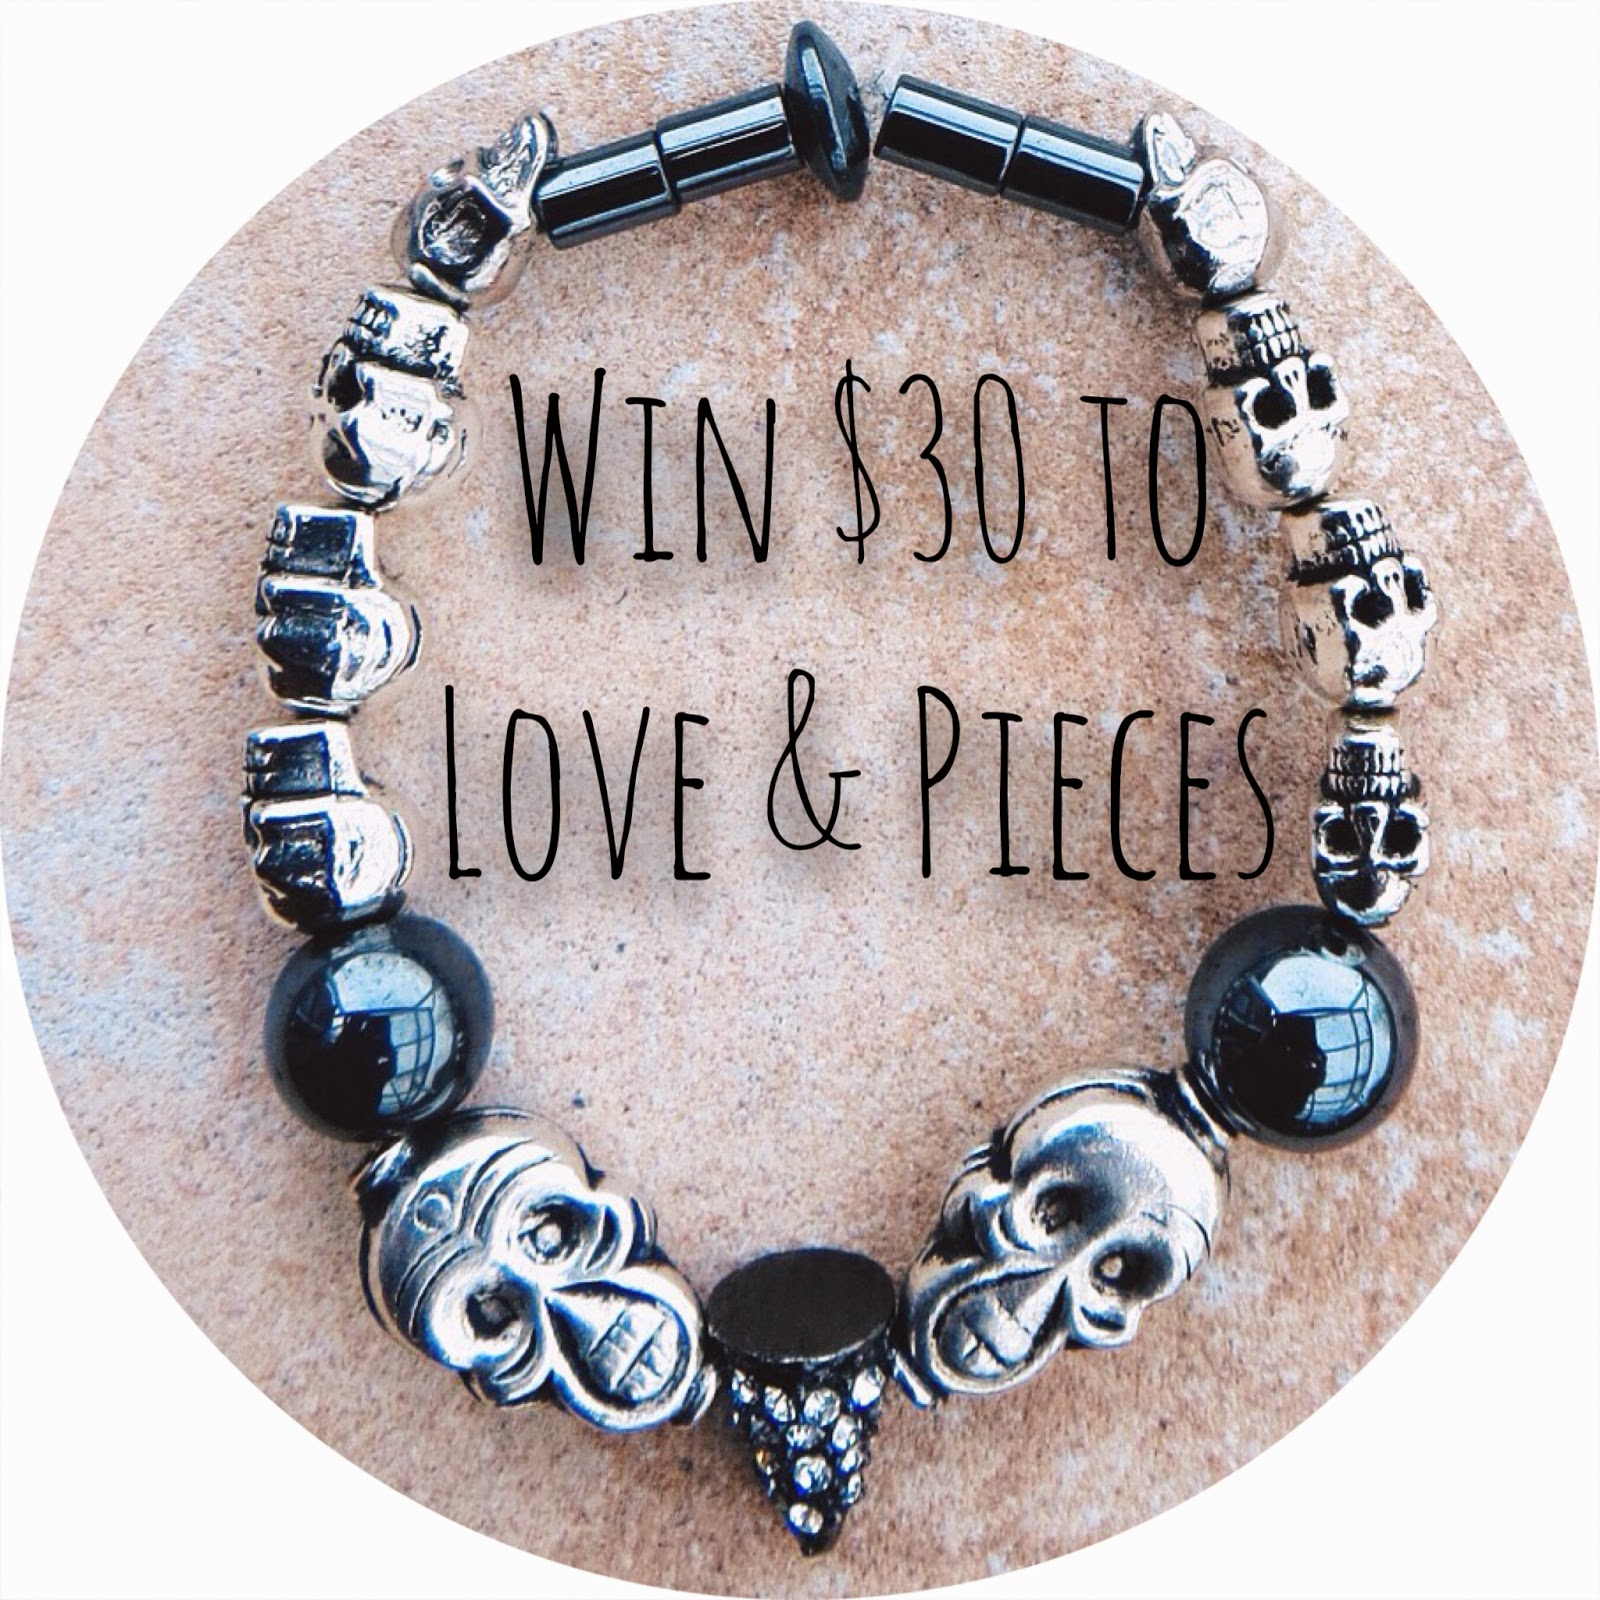 Love & Pieces, giveaway, freebie friday, contest, sweepstakes